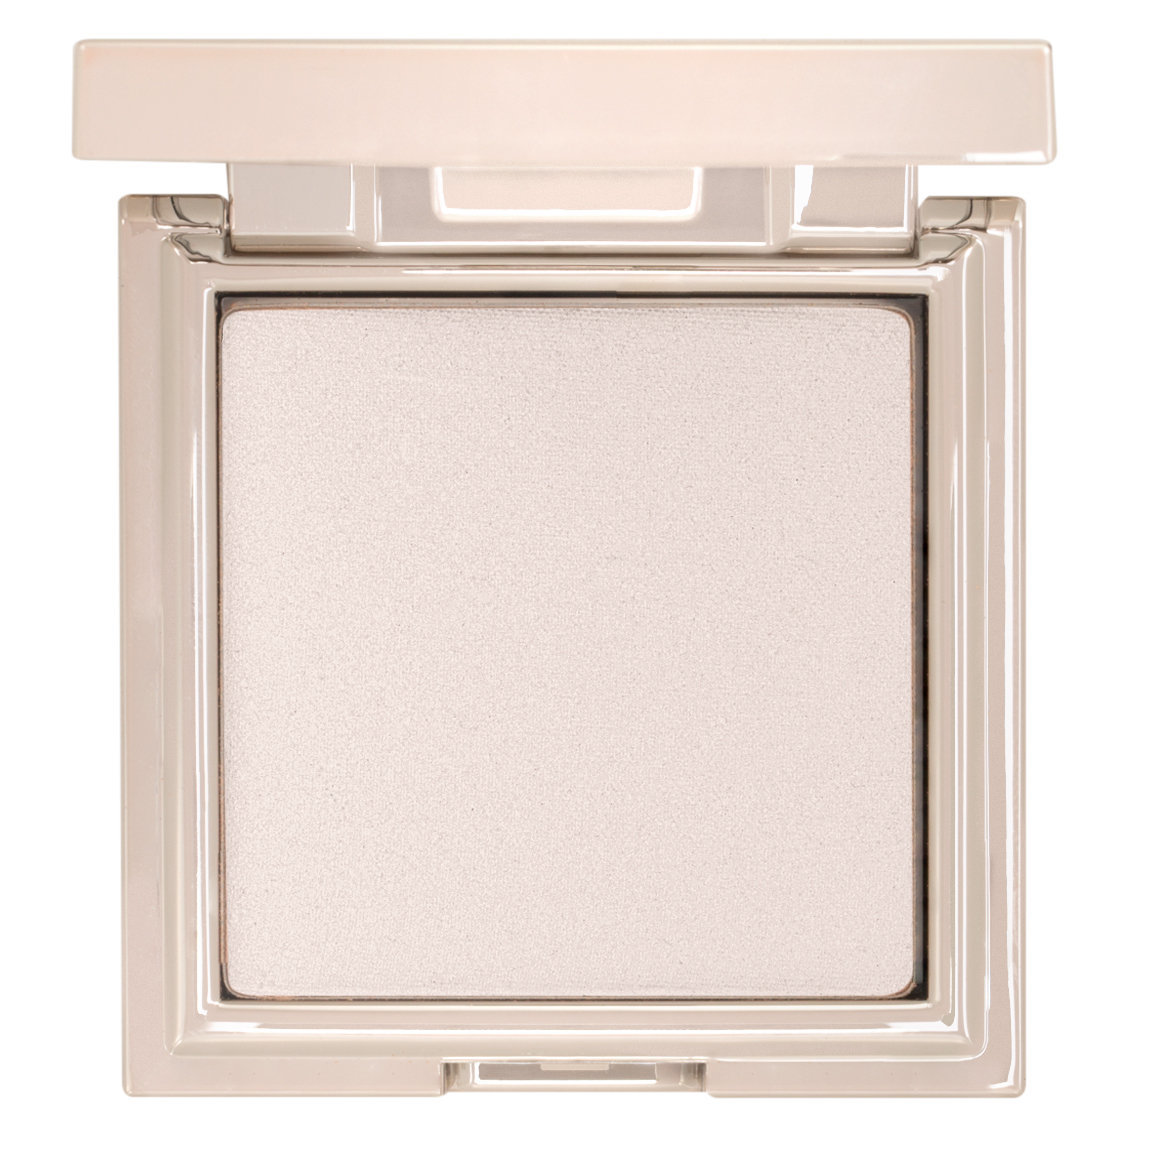 Jouer Cosmetics Powder Highlighter Ice product smear.